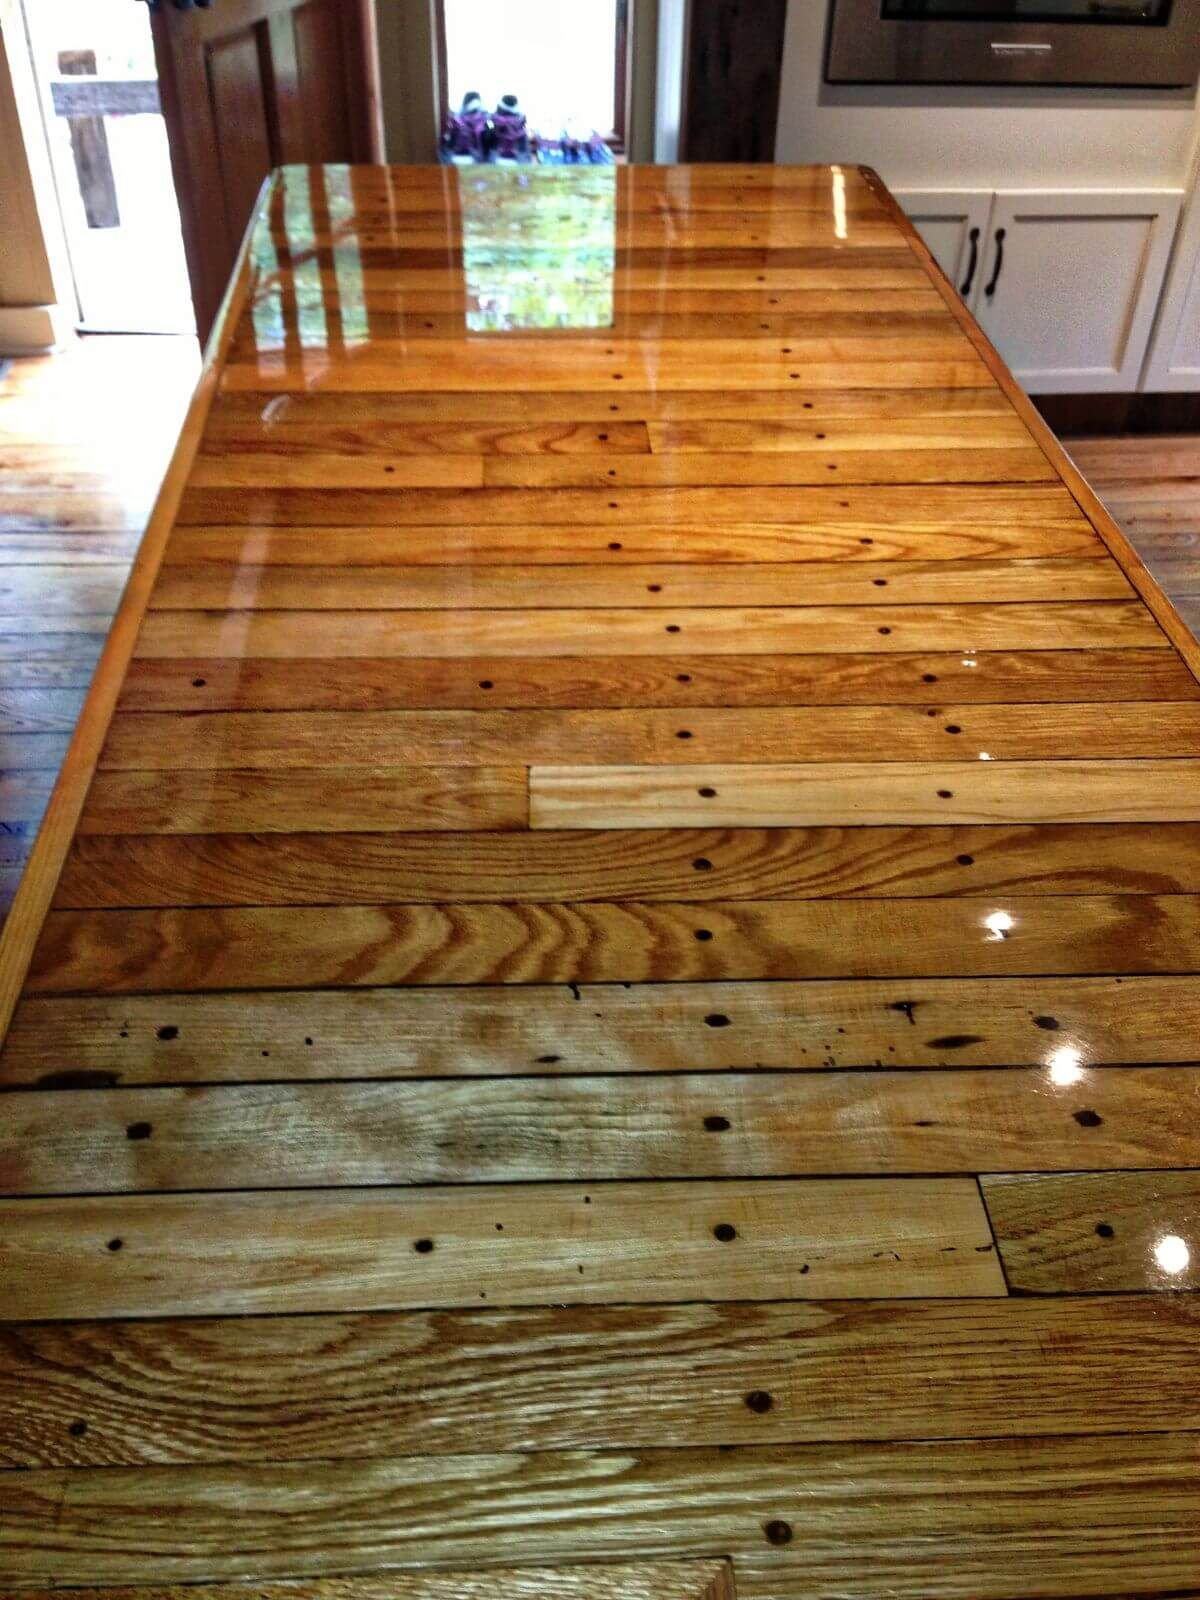 55 Amazing Epoxy Table Top Ideas You'll Love To Re